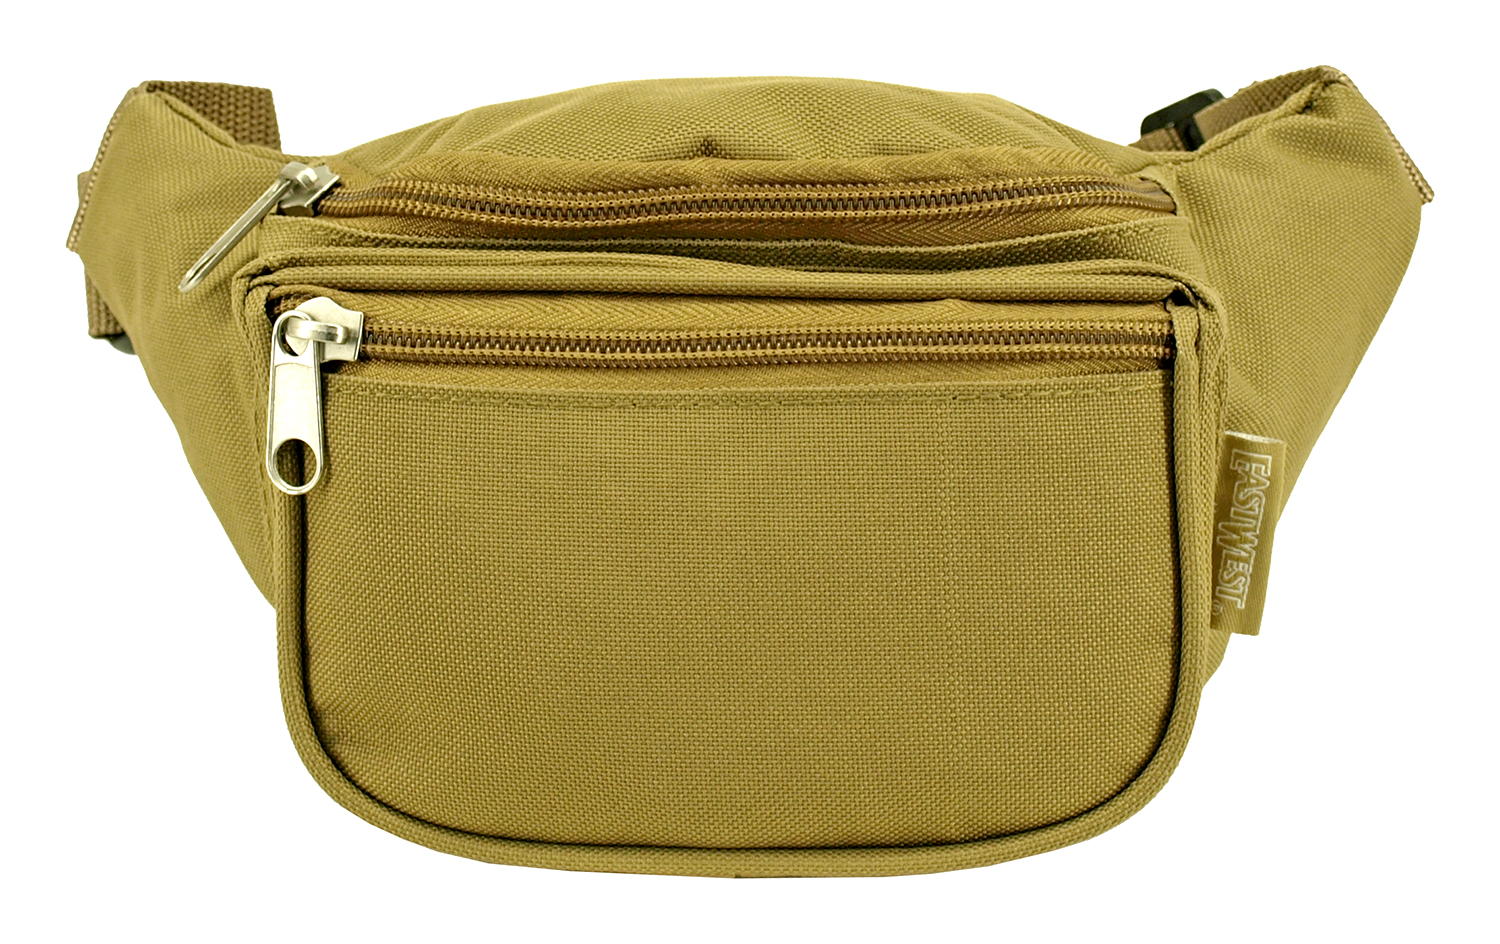 Medium Daily Fanny Pack with Pouch - Tan